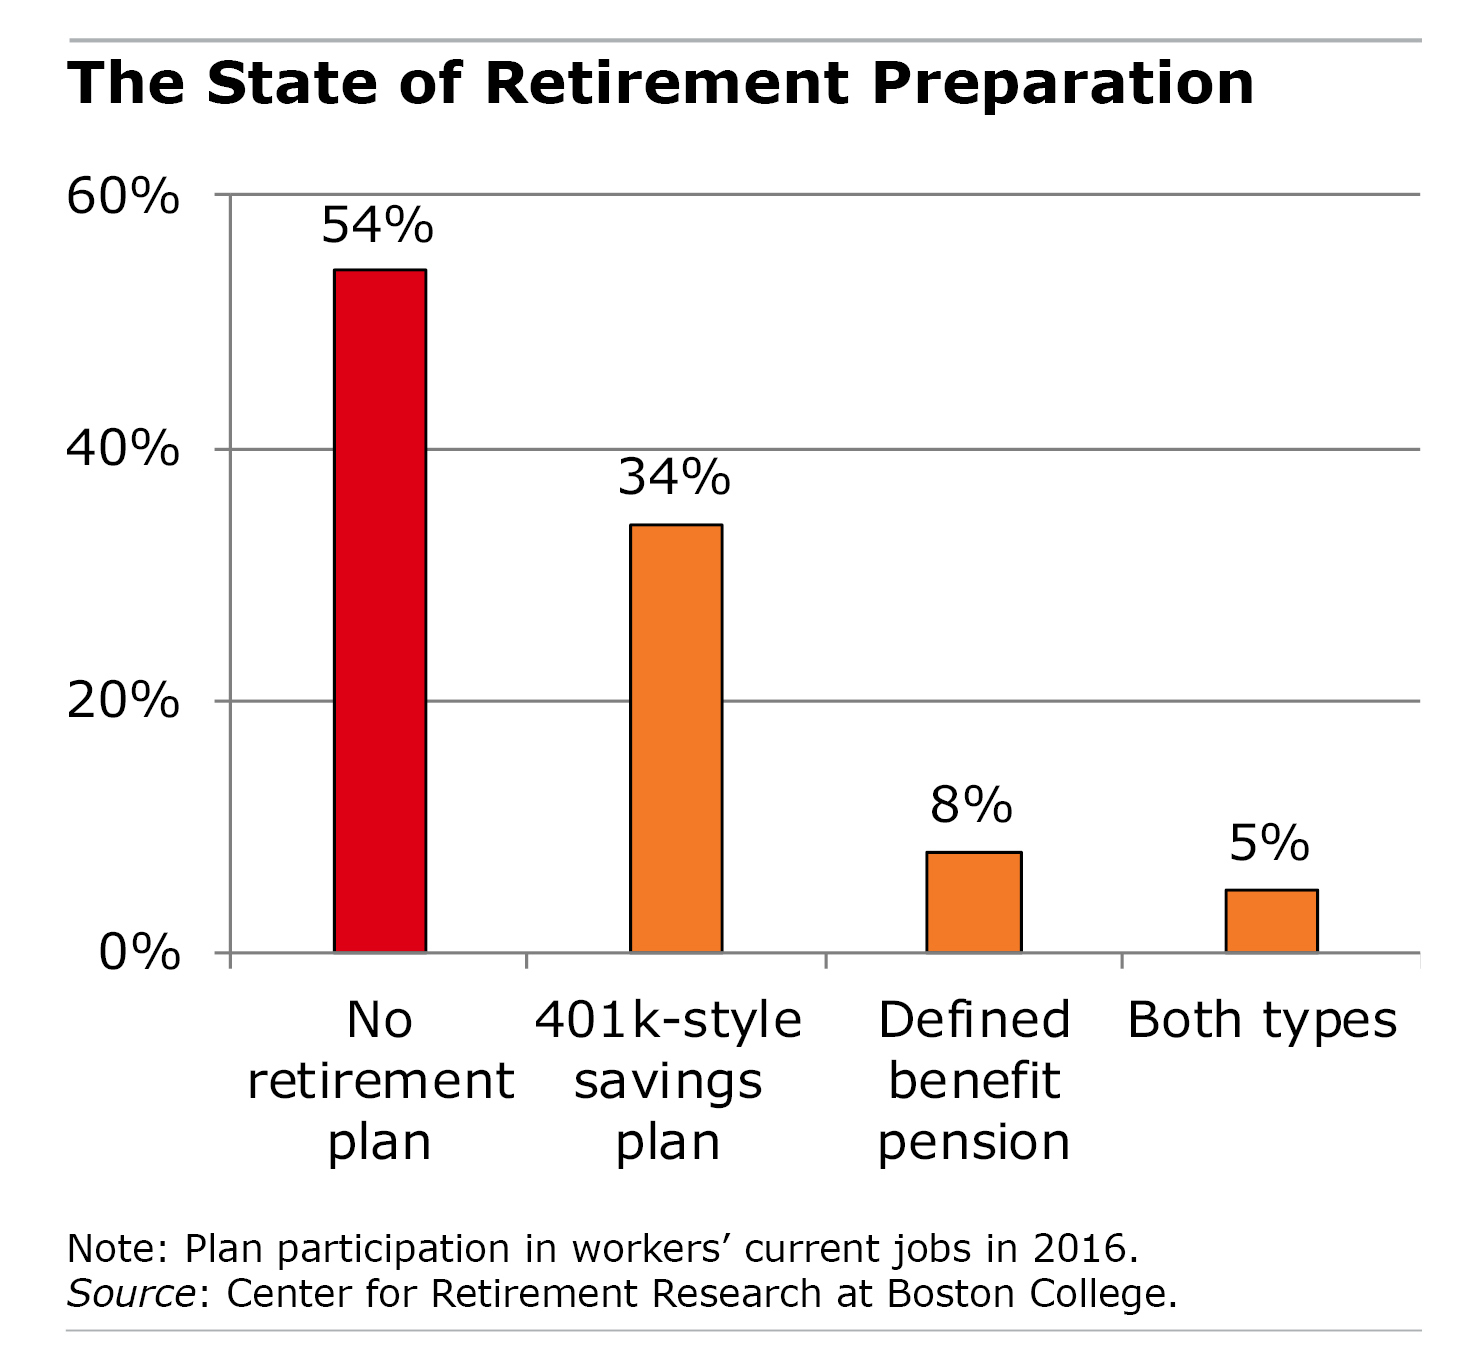 Bar graph showing percentage of workers without a 401k